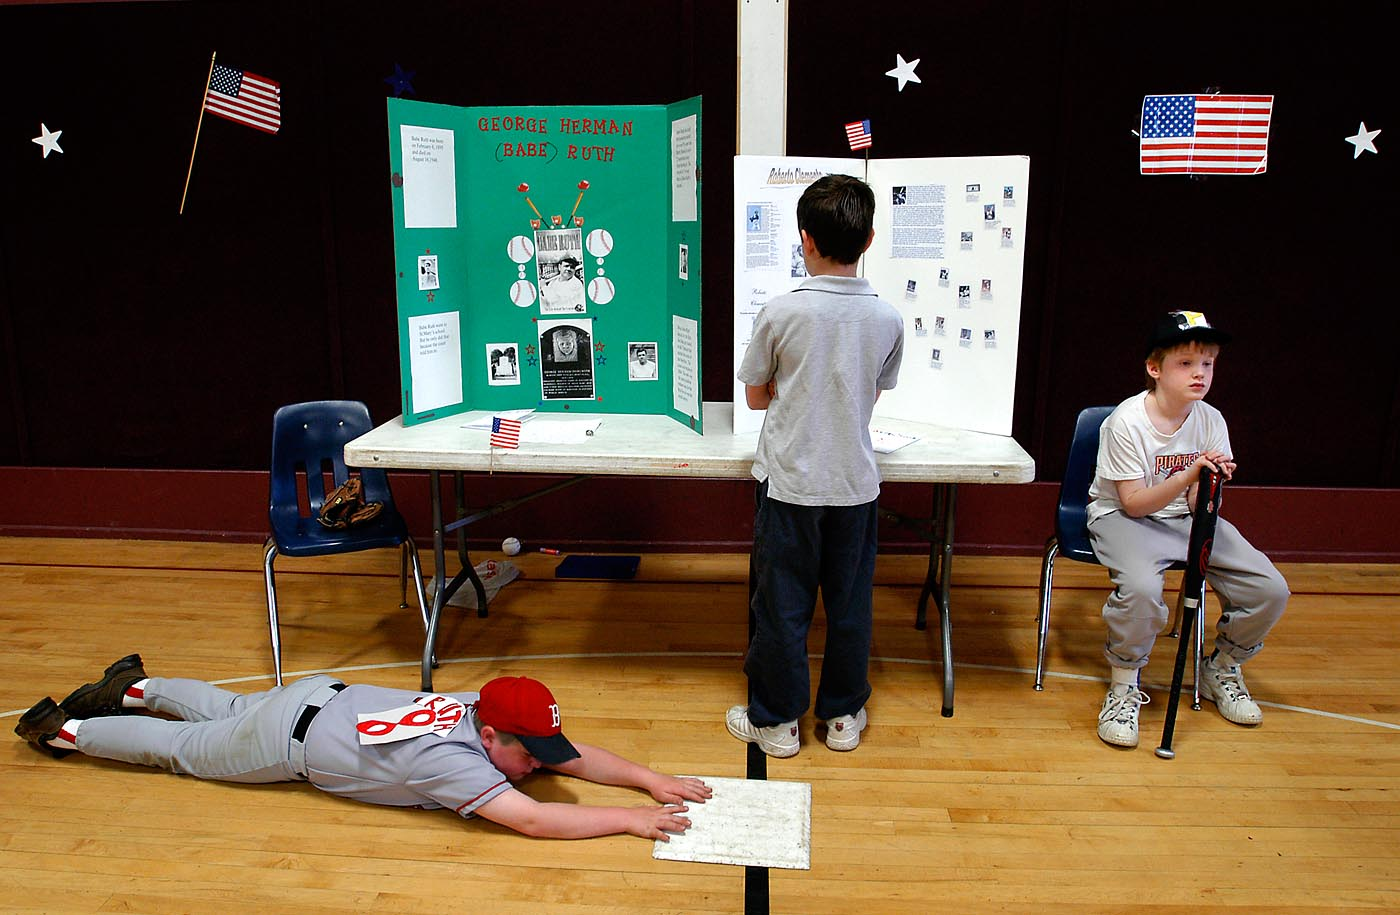 Posed as wax figures of baseball greats Babe Ruth and Roberto Clemente, third-graders Tom Hilton (left) and Adam Sylvester (right) hold still during Concord Christian's American Wax Museum. Fourth-grader John Holmes (center) studies their display boards.